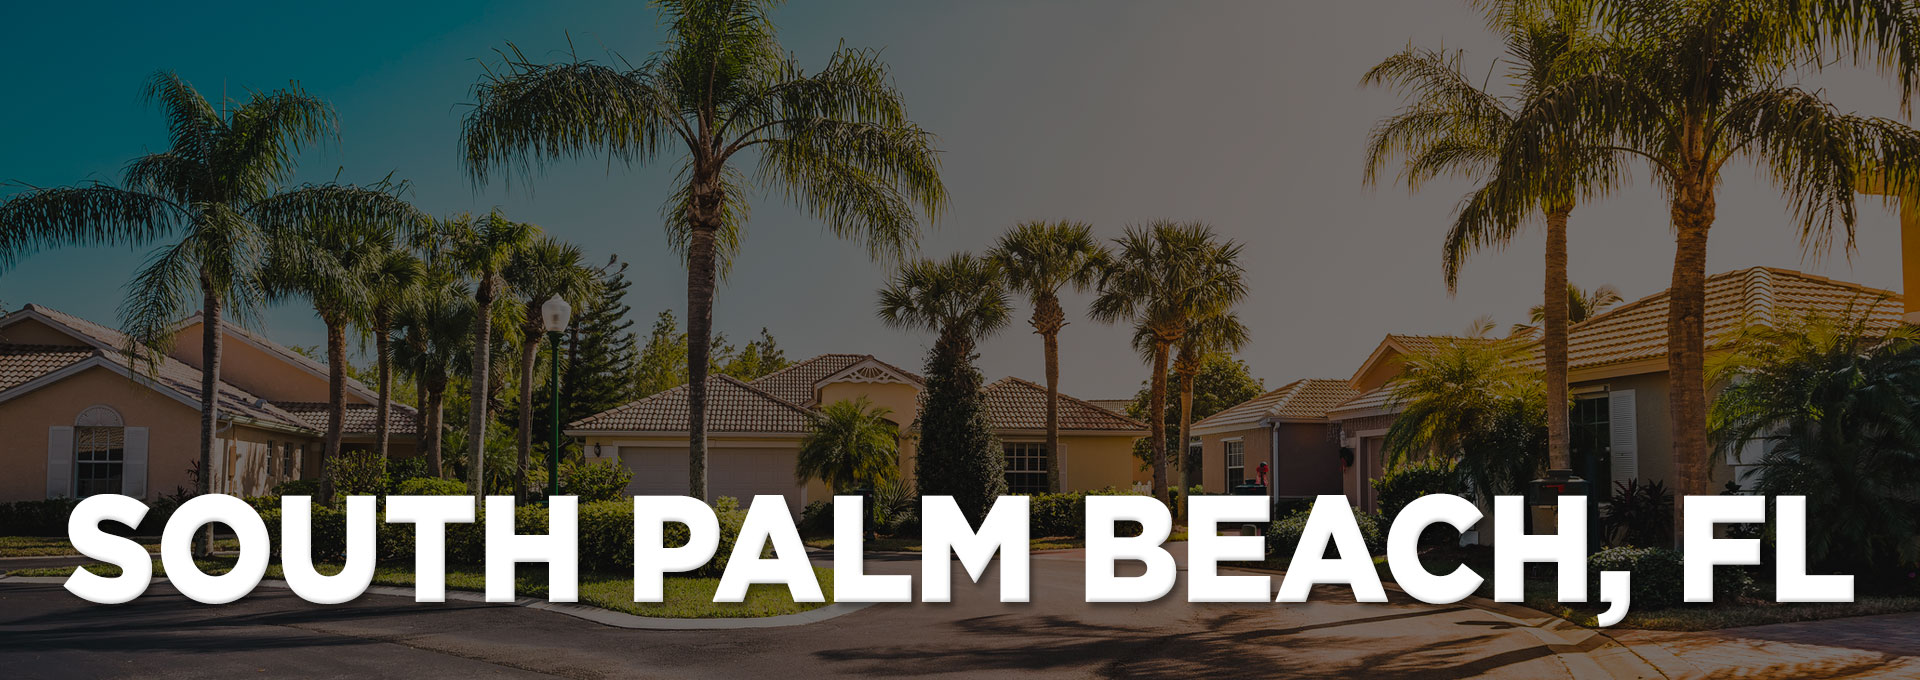 homes in south palm beach fl